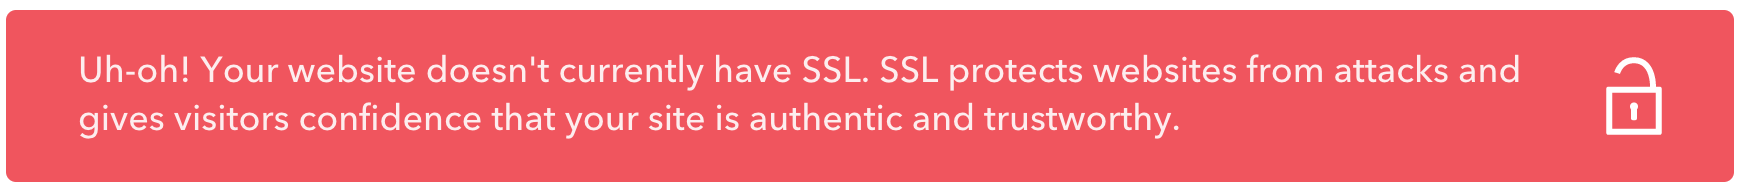 no ssl certificate warning message